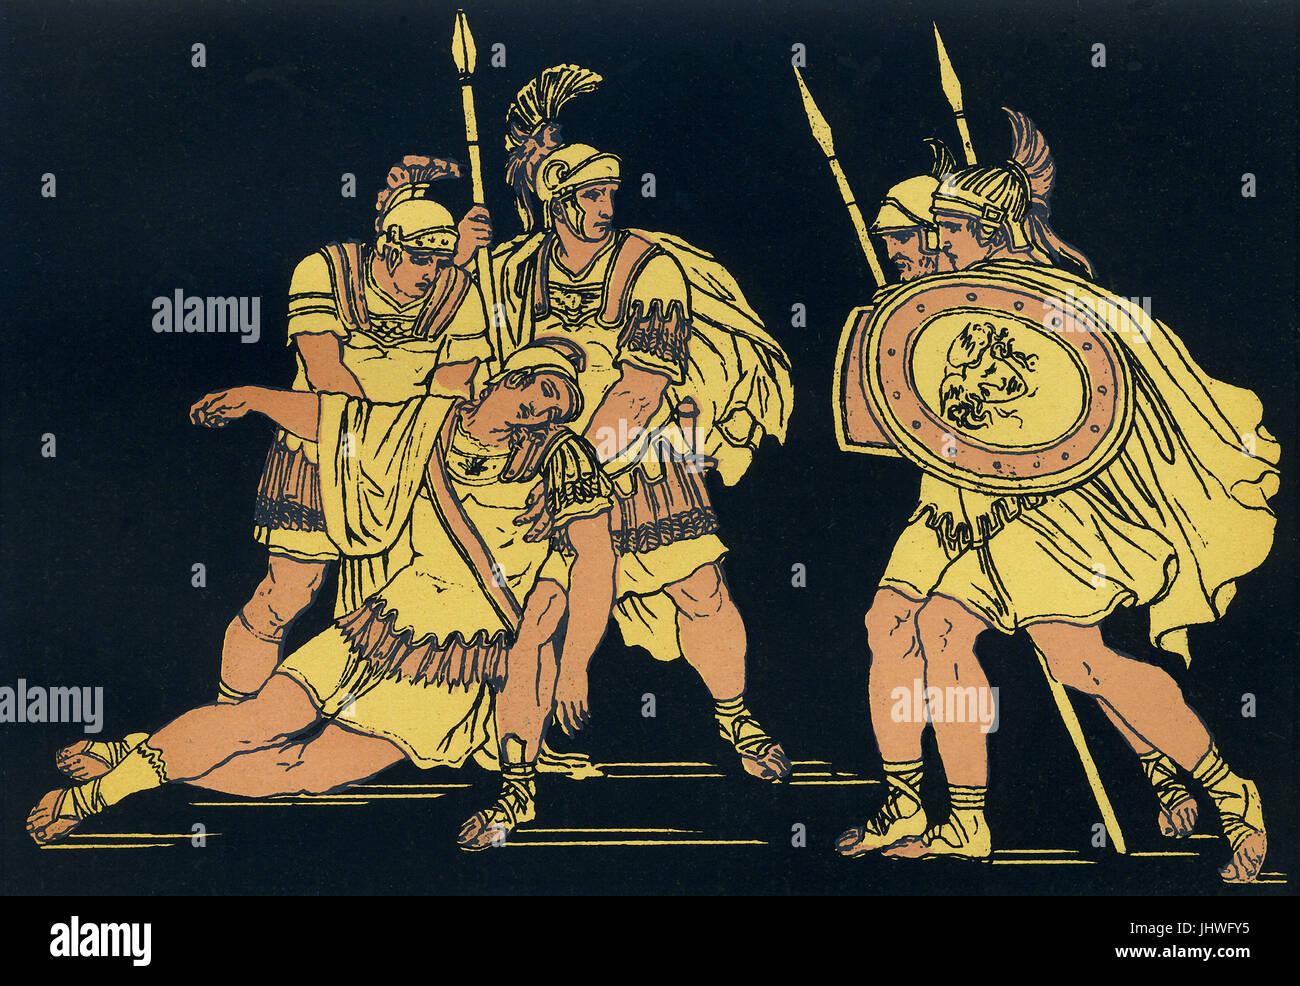 Lausus was the son of the Etruscan king Mezentius. He fought against Aeneas and his followers who escaped Troy after - Stock Image